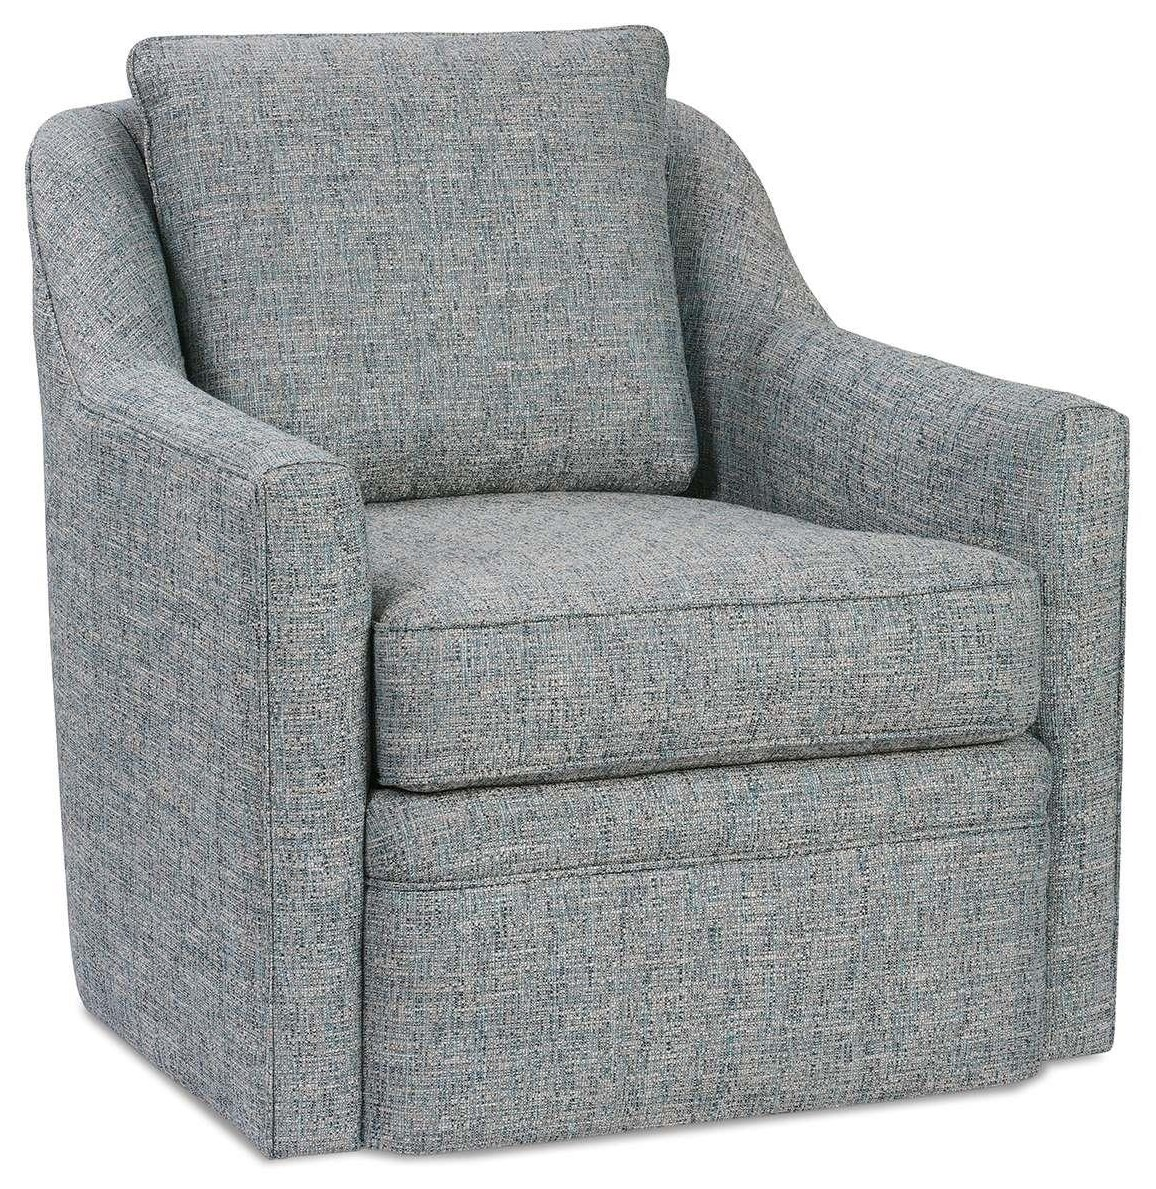 Hollins Accent Swivel Chair by Rowe at C. S. Wo & Sons Hawaii